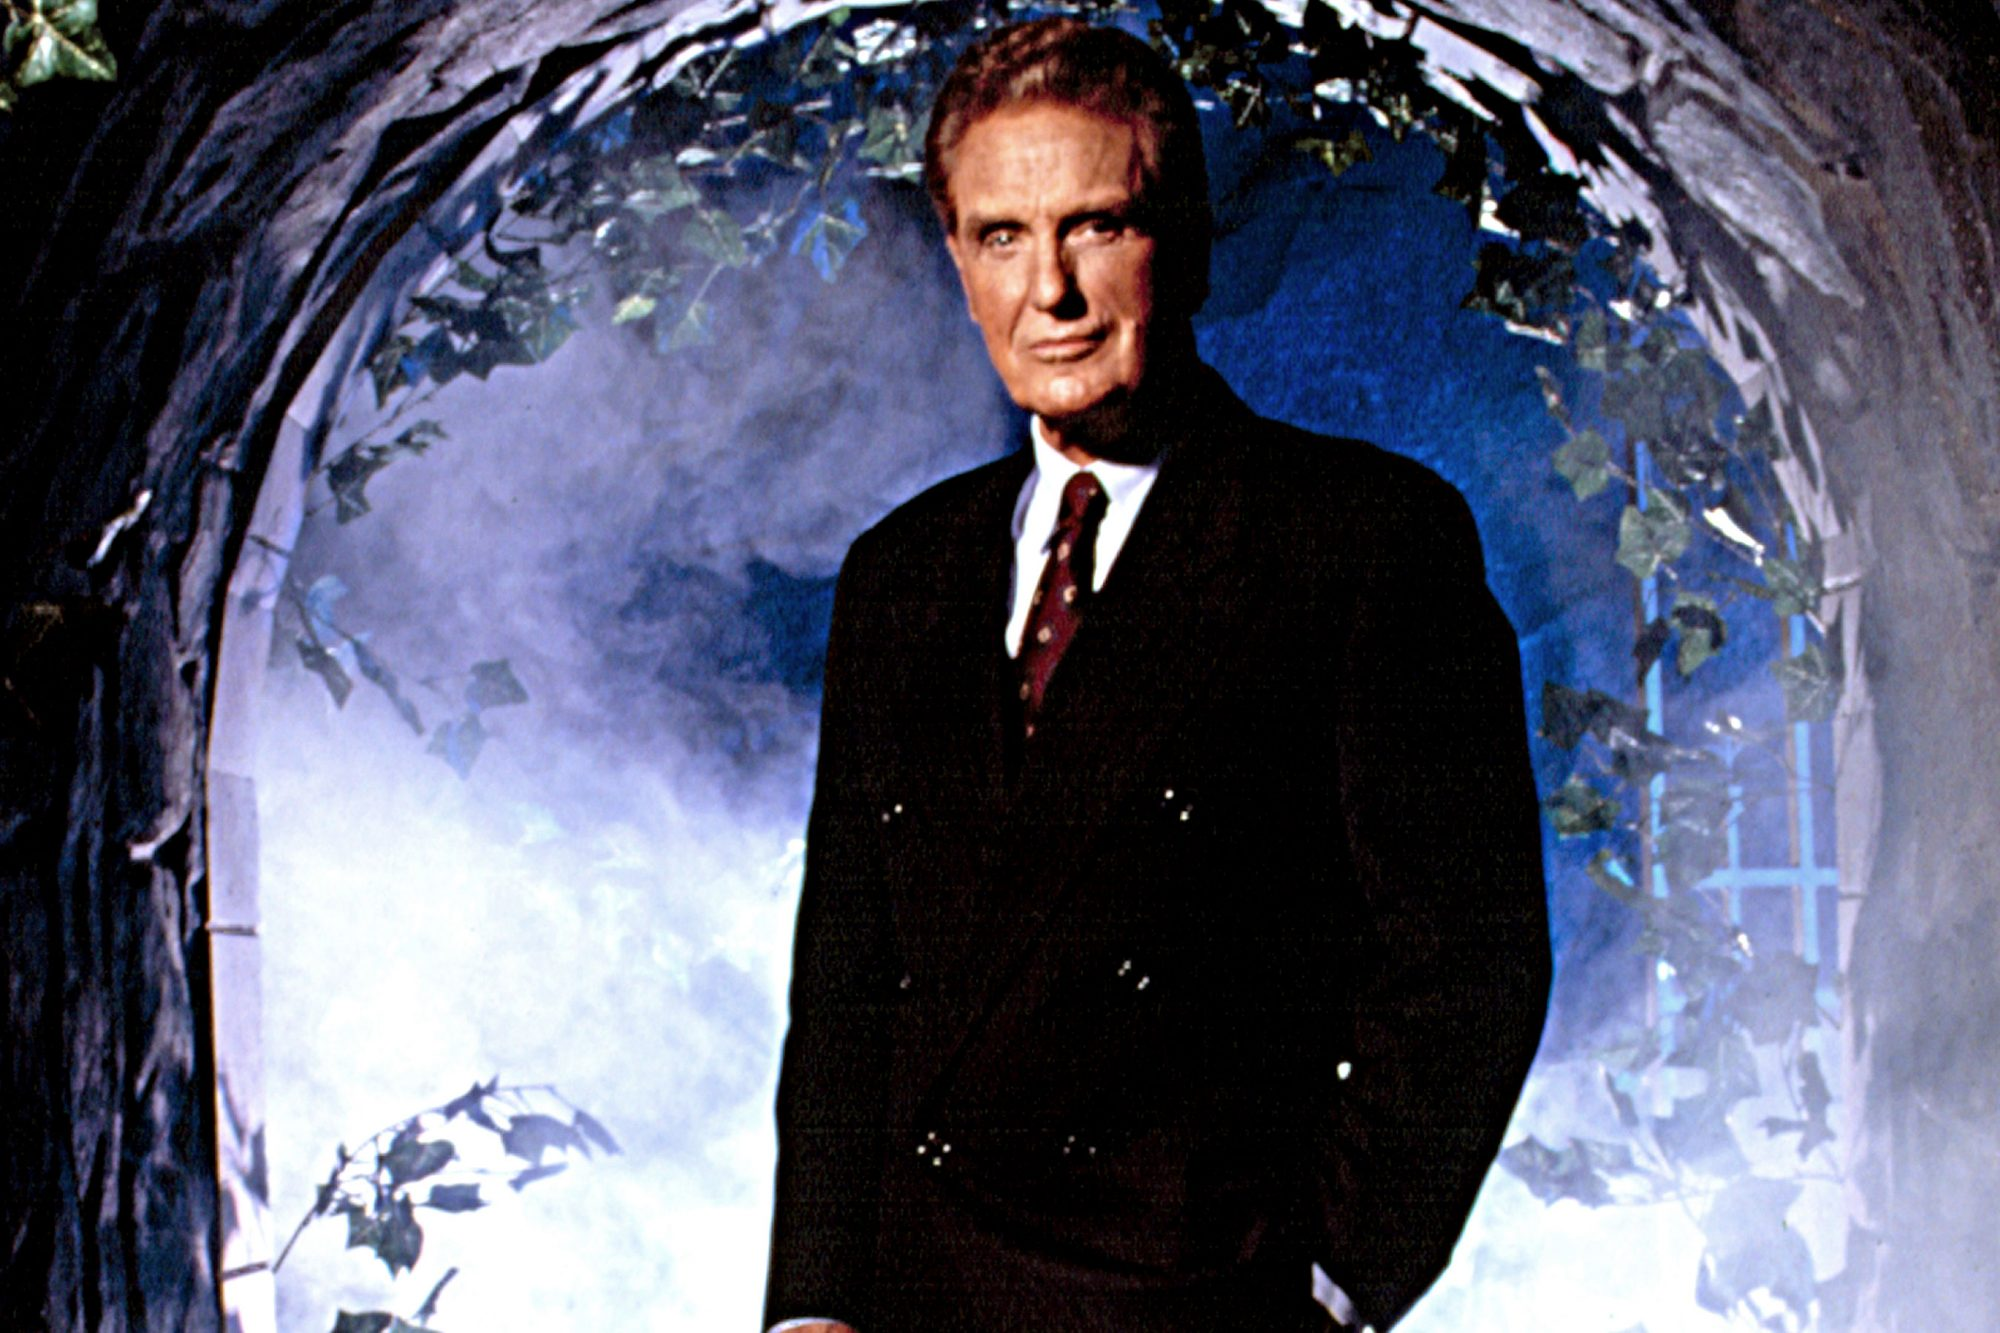 UNSOLVED MYSTERIES, Robert Stack, 1987-